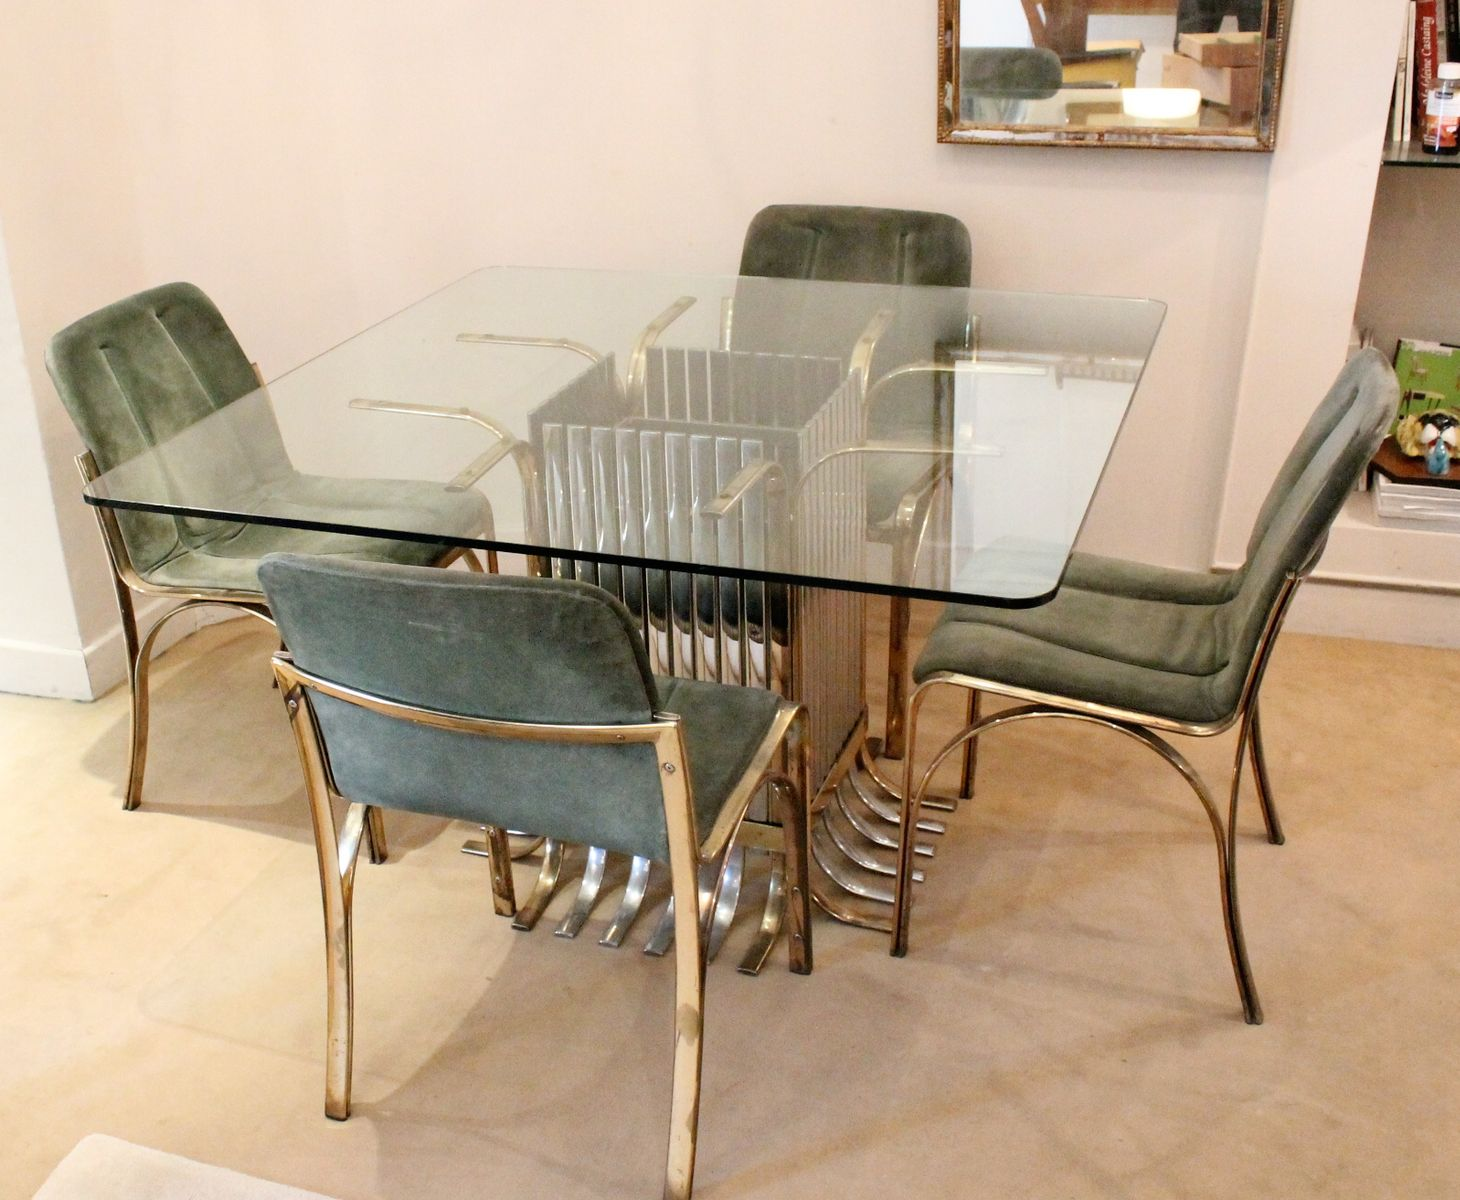 Italian Glass Dining Table with Four Chairs 1970 for sale  : italian glass dining table with four chairs 1970 20 from www.pamono.co.uk size 1459 x 1200 jpeg 147kB